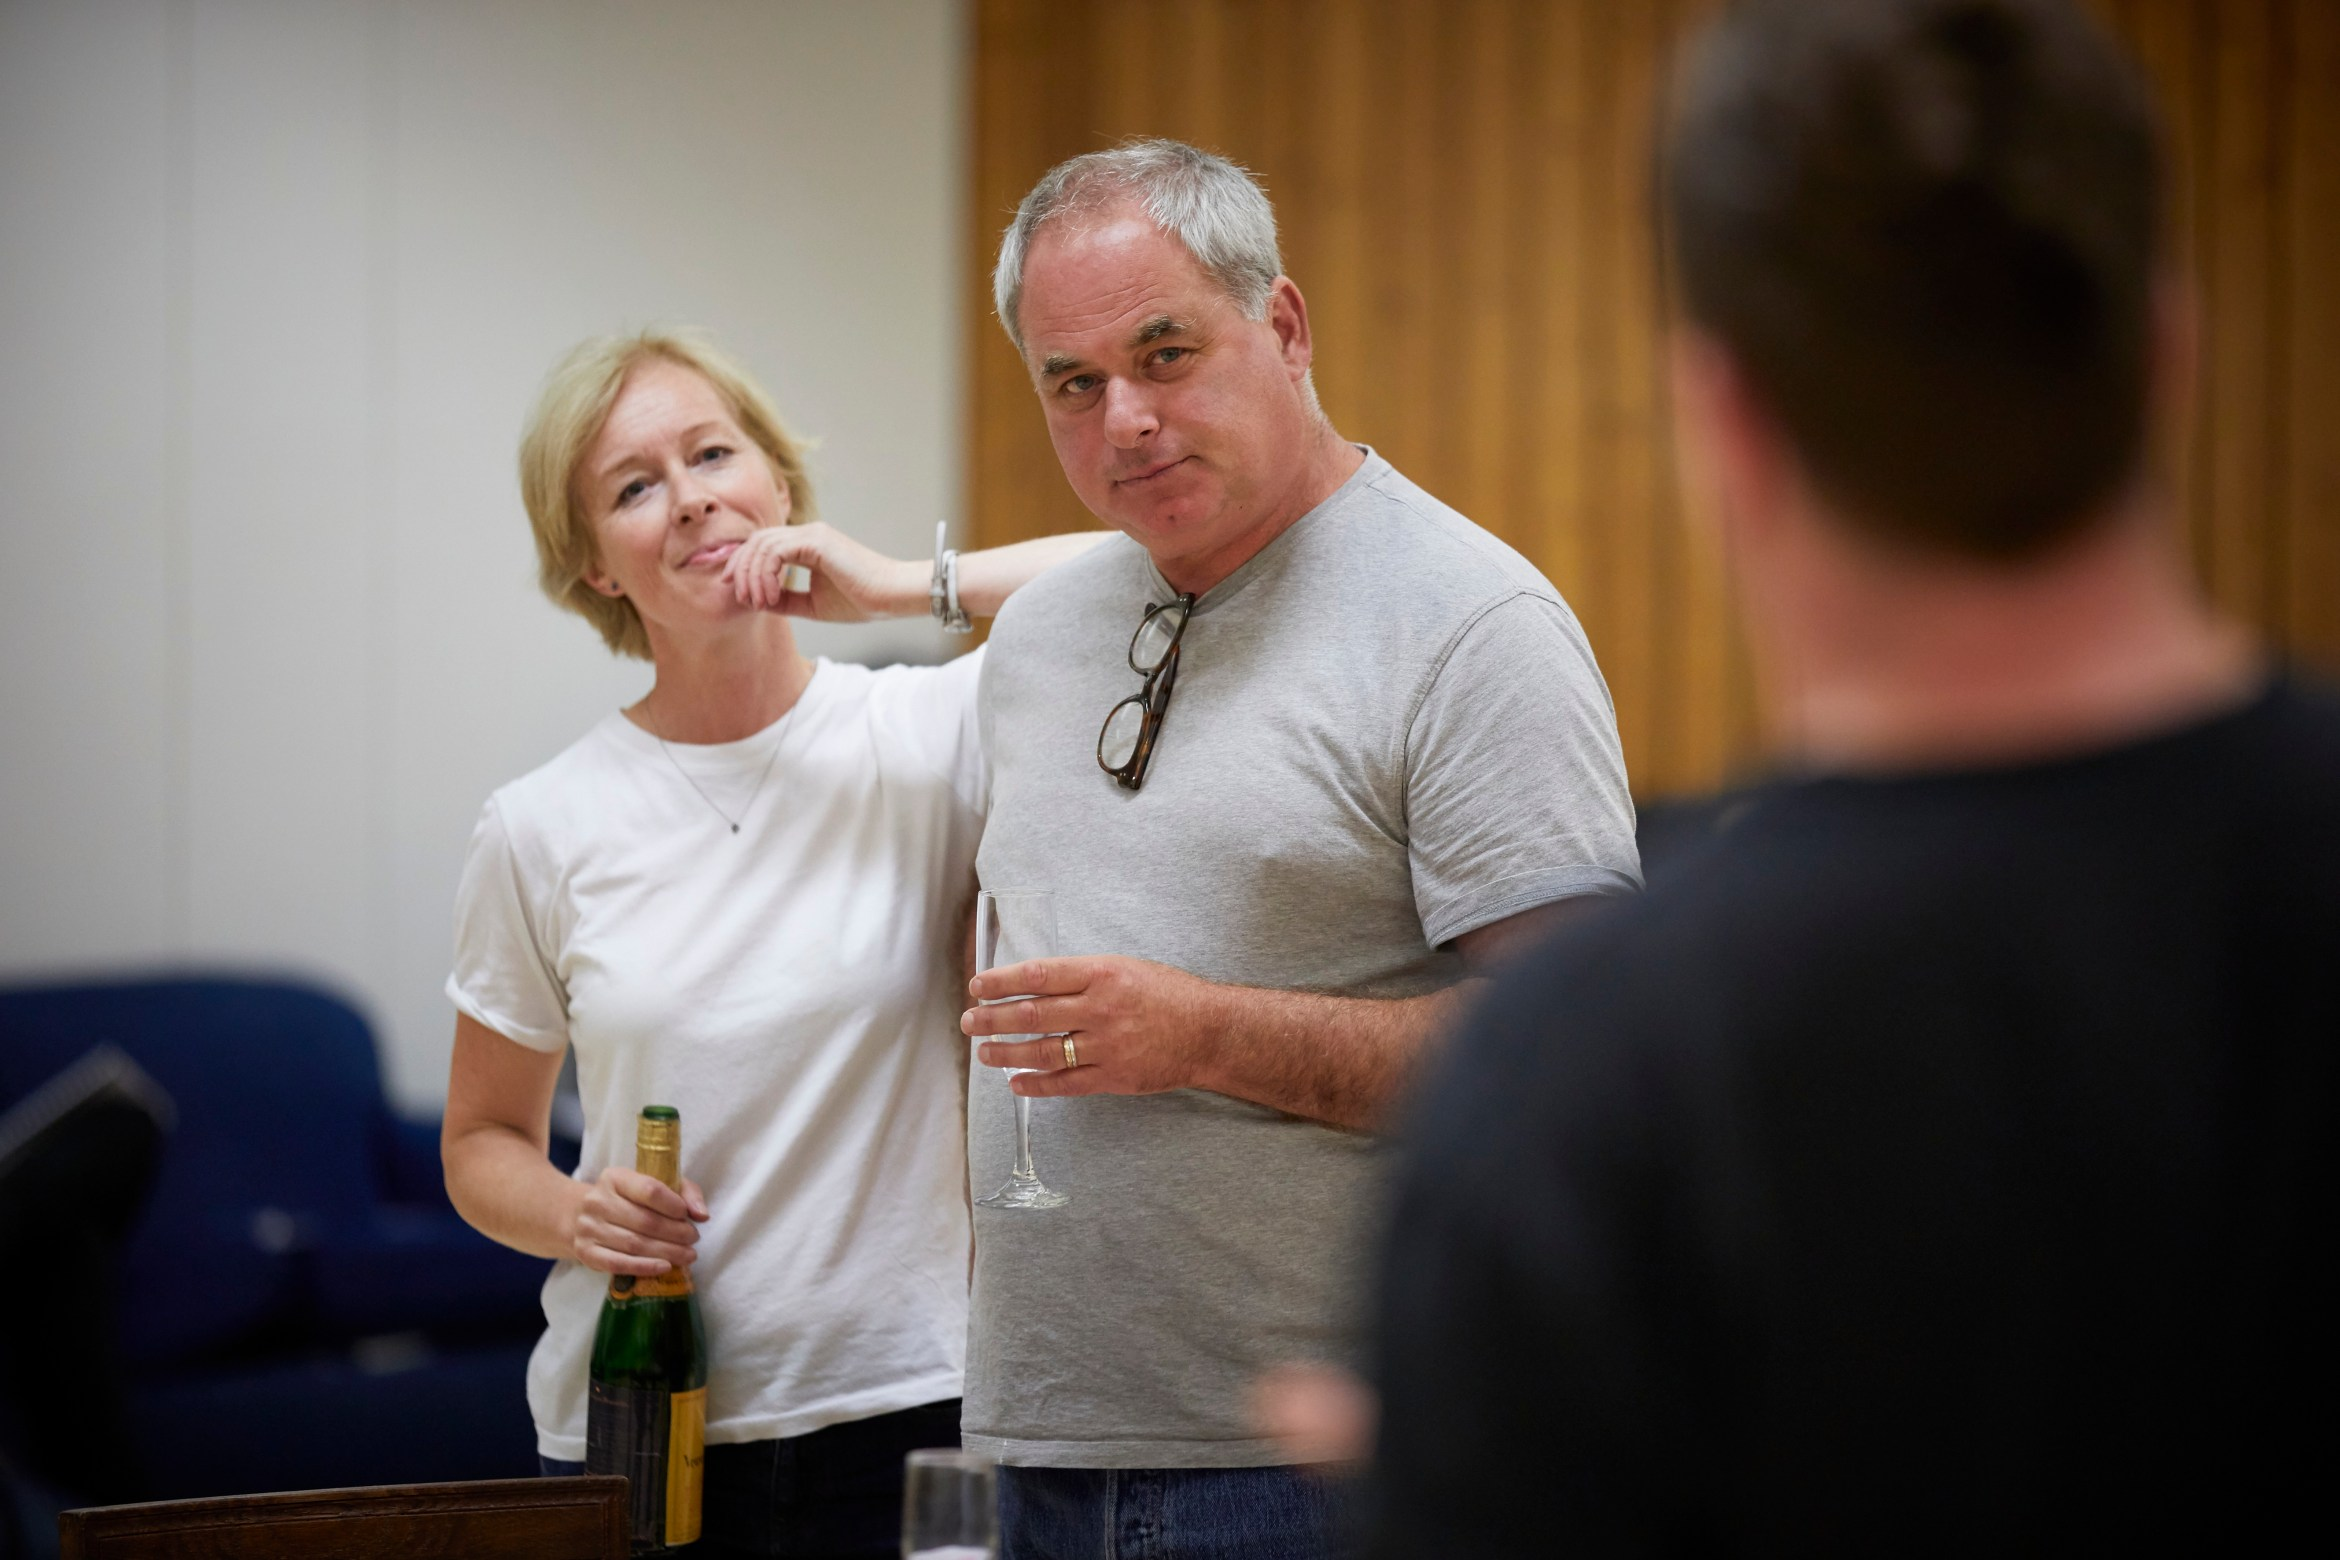 l-r Geraldine Alexander and Howard Ward in rehearsal for 'Oslo' - photo credit Brinkhoff Mögenberg.988-0166.JPG